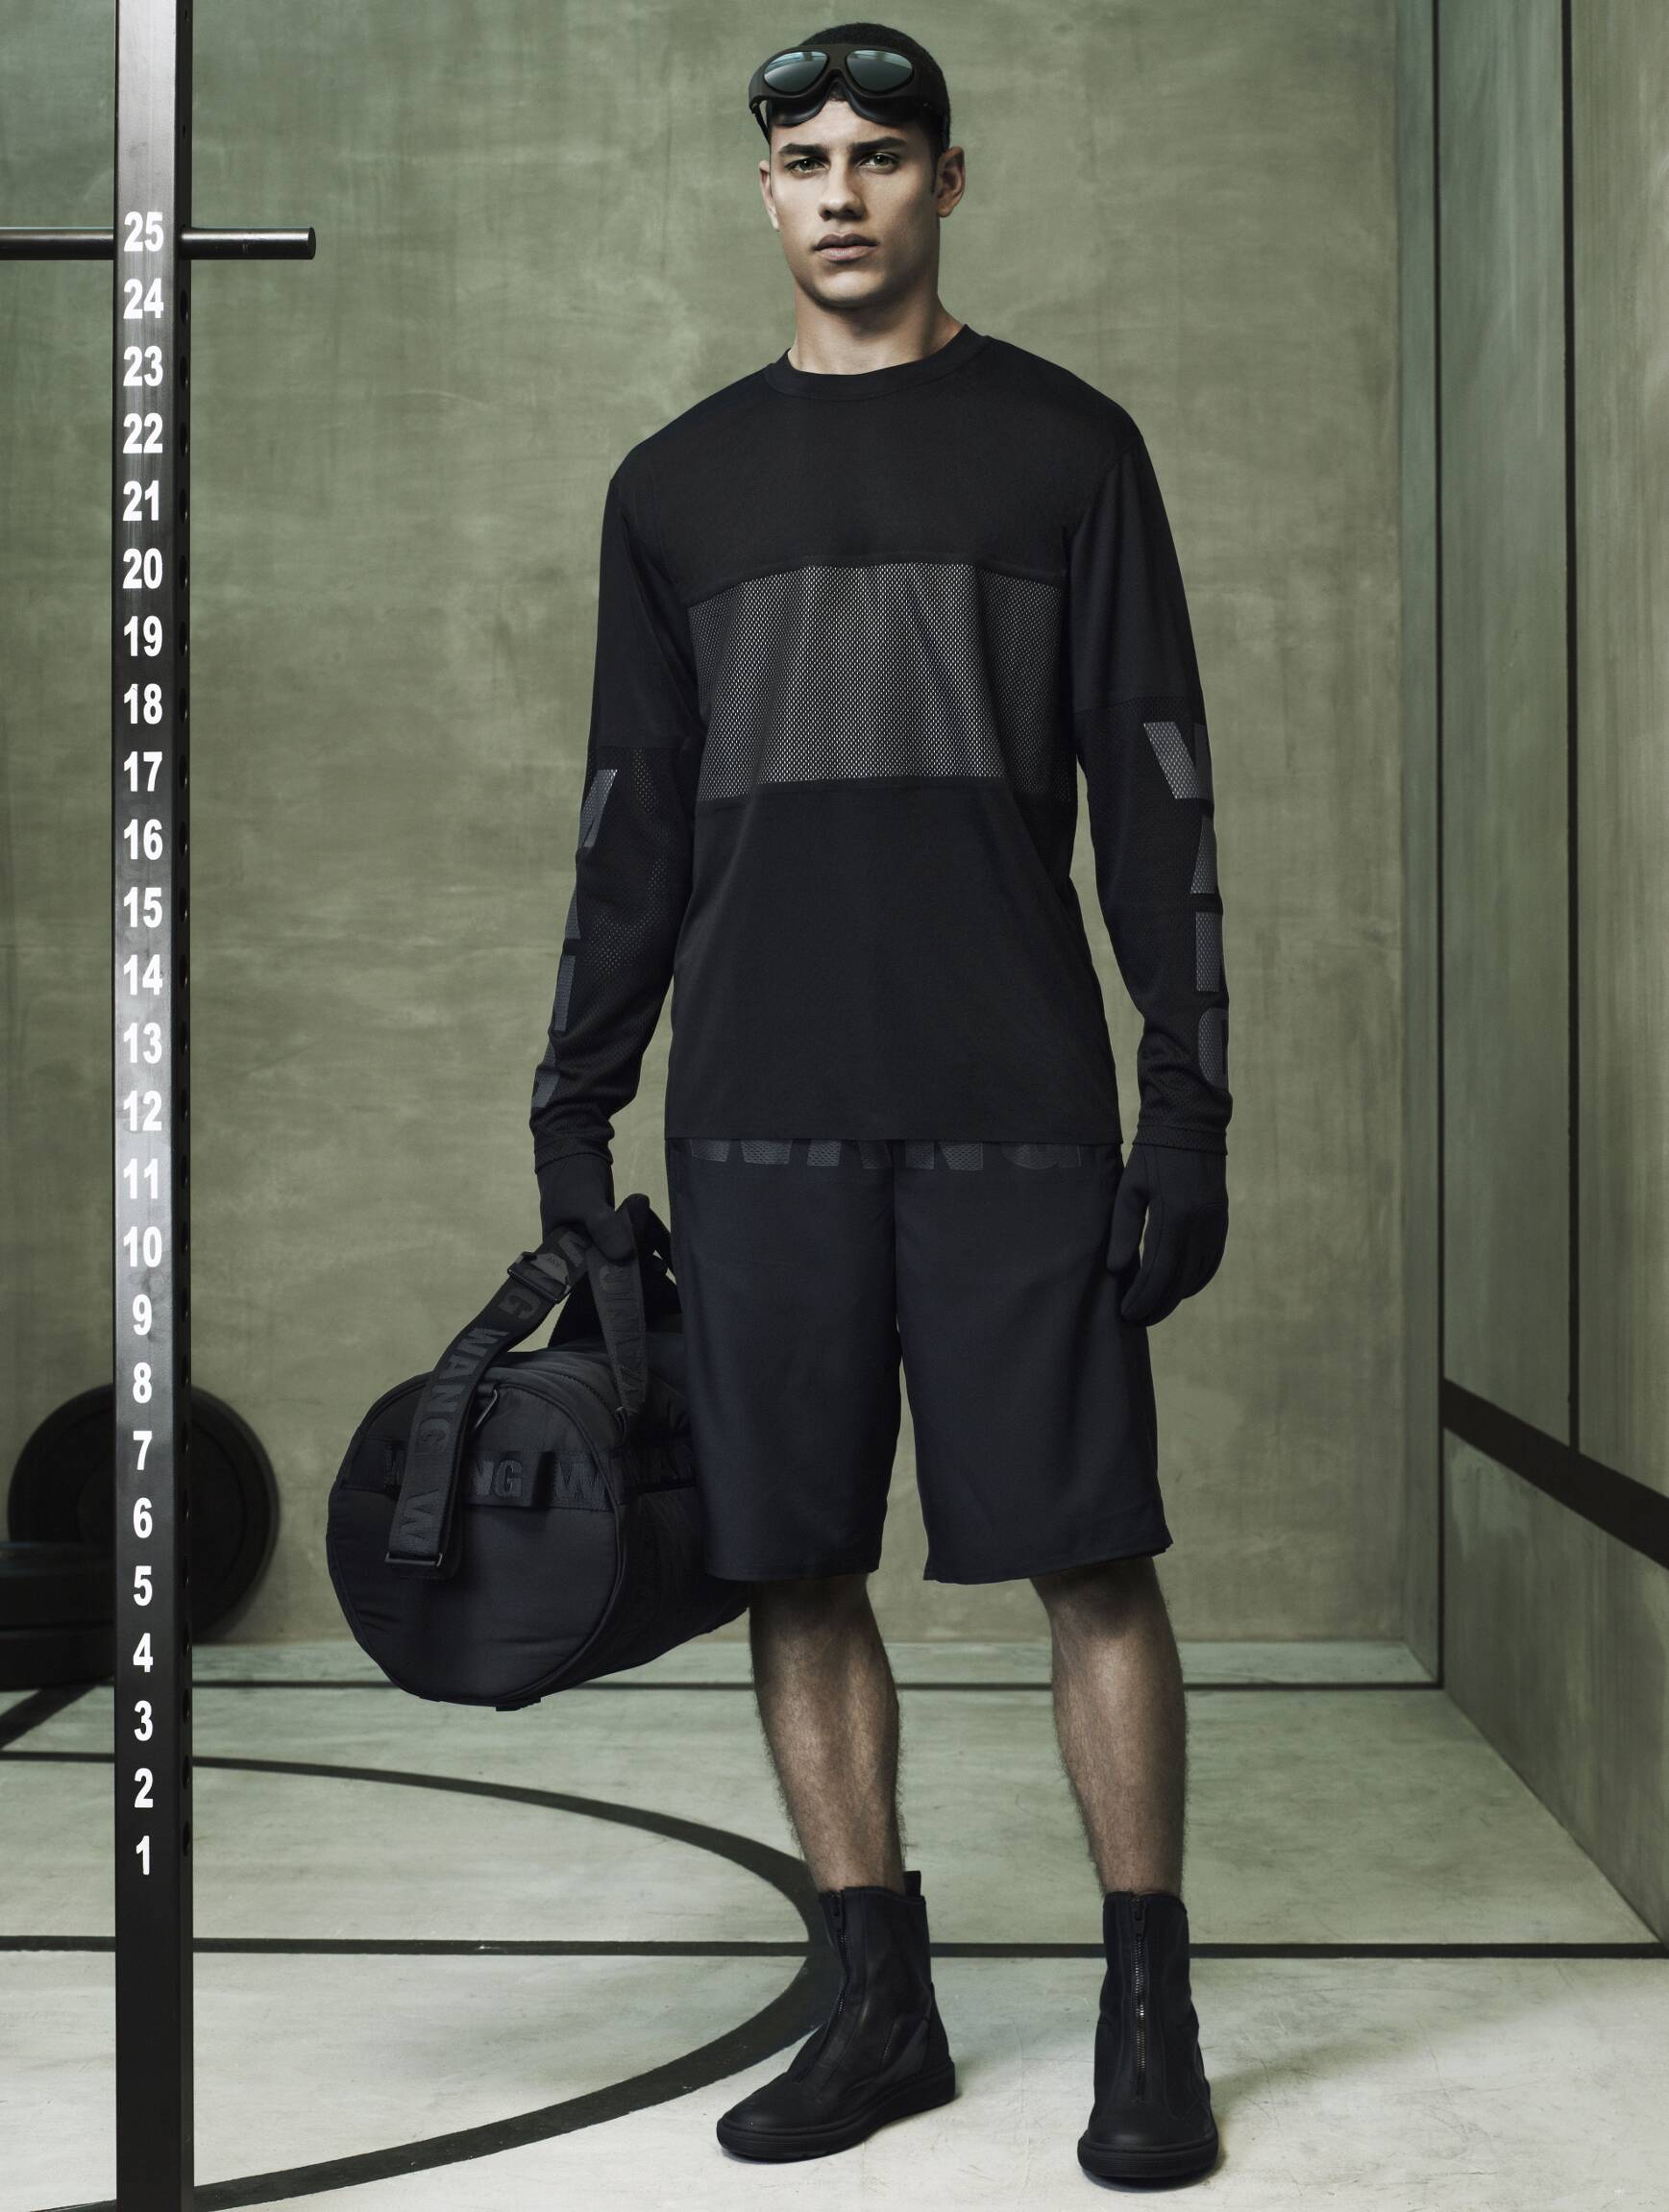 Fitness Lifestyle Wangen Alexander Wang For H Andm Women 39s And Men 39s Collection The